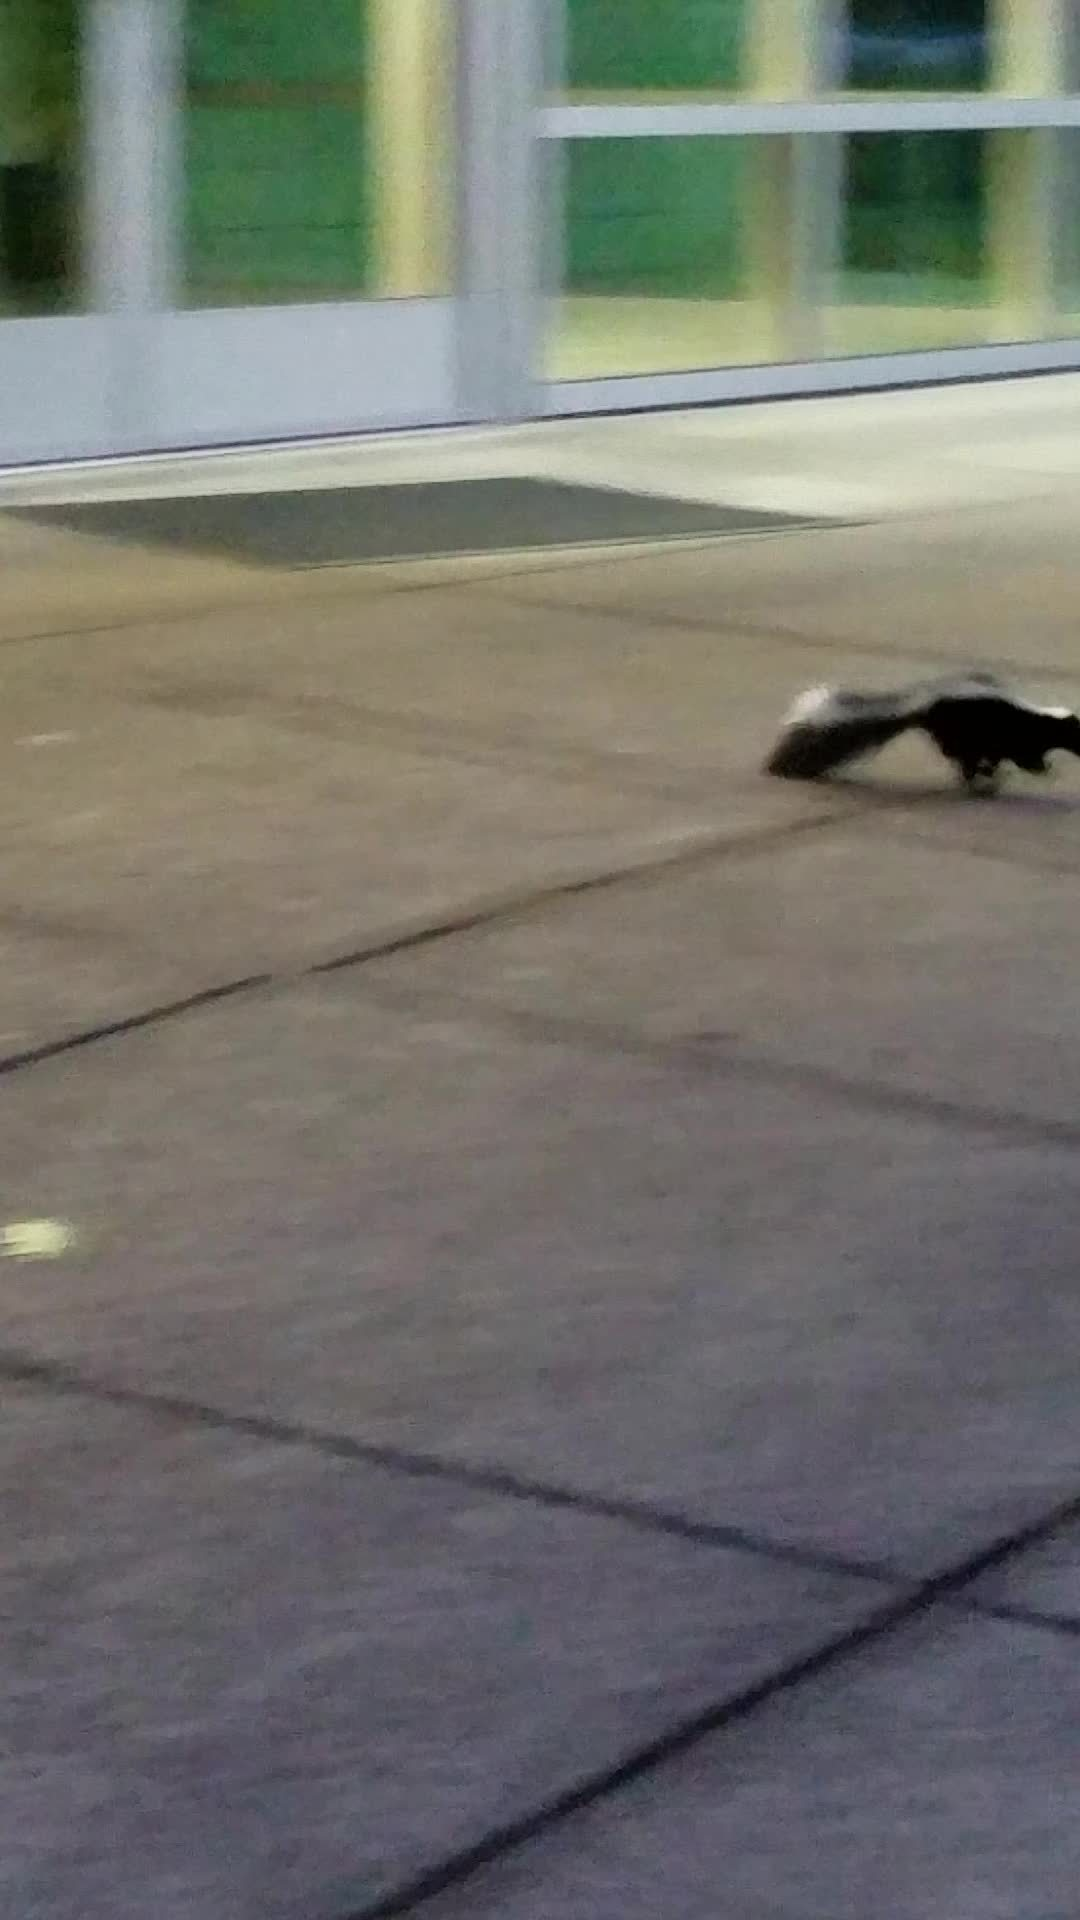 tifu, Skunk from Pokémon go GIFs